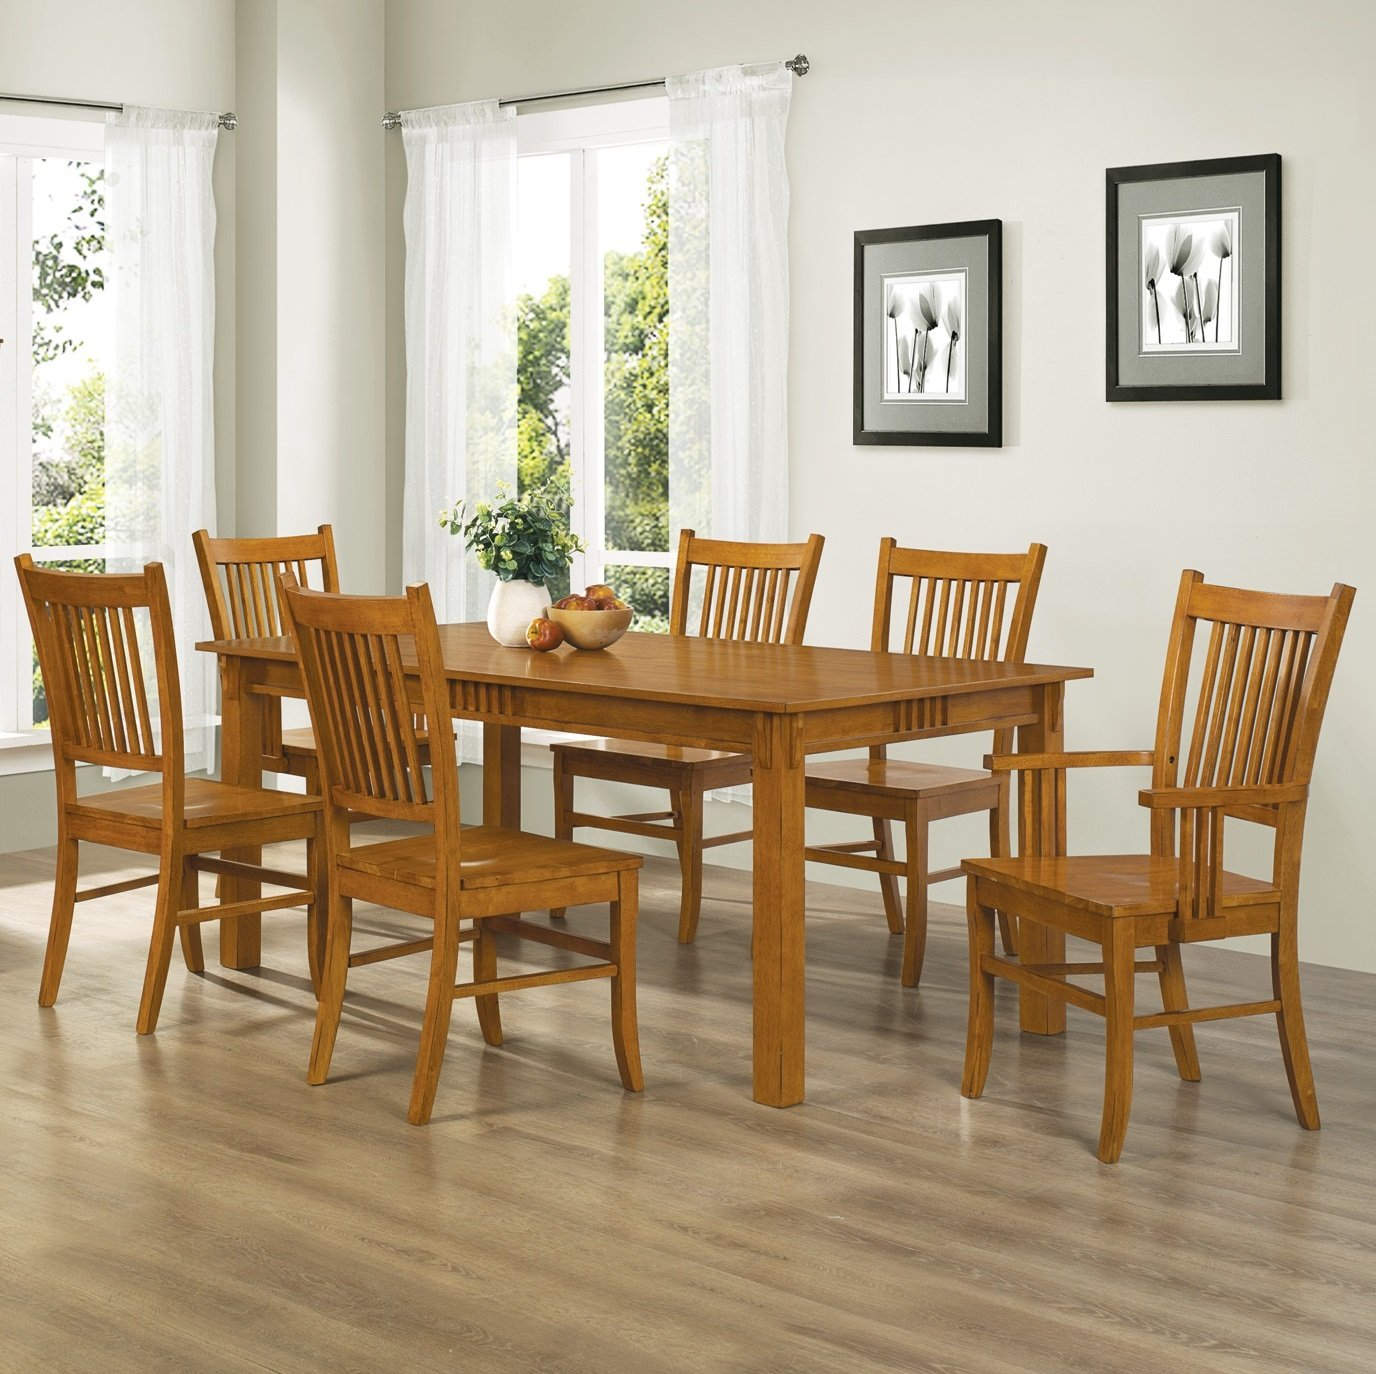 Ordinaire Amazon.com   Coaster Home Furnishings 7 Piece Mission Style Solid Hardwood Dining  Table U0026 Chairs Set   Table U0026 Chair Sets